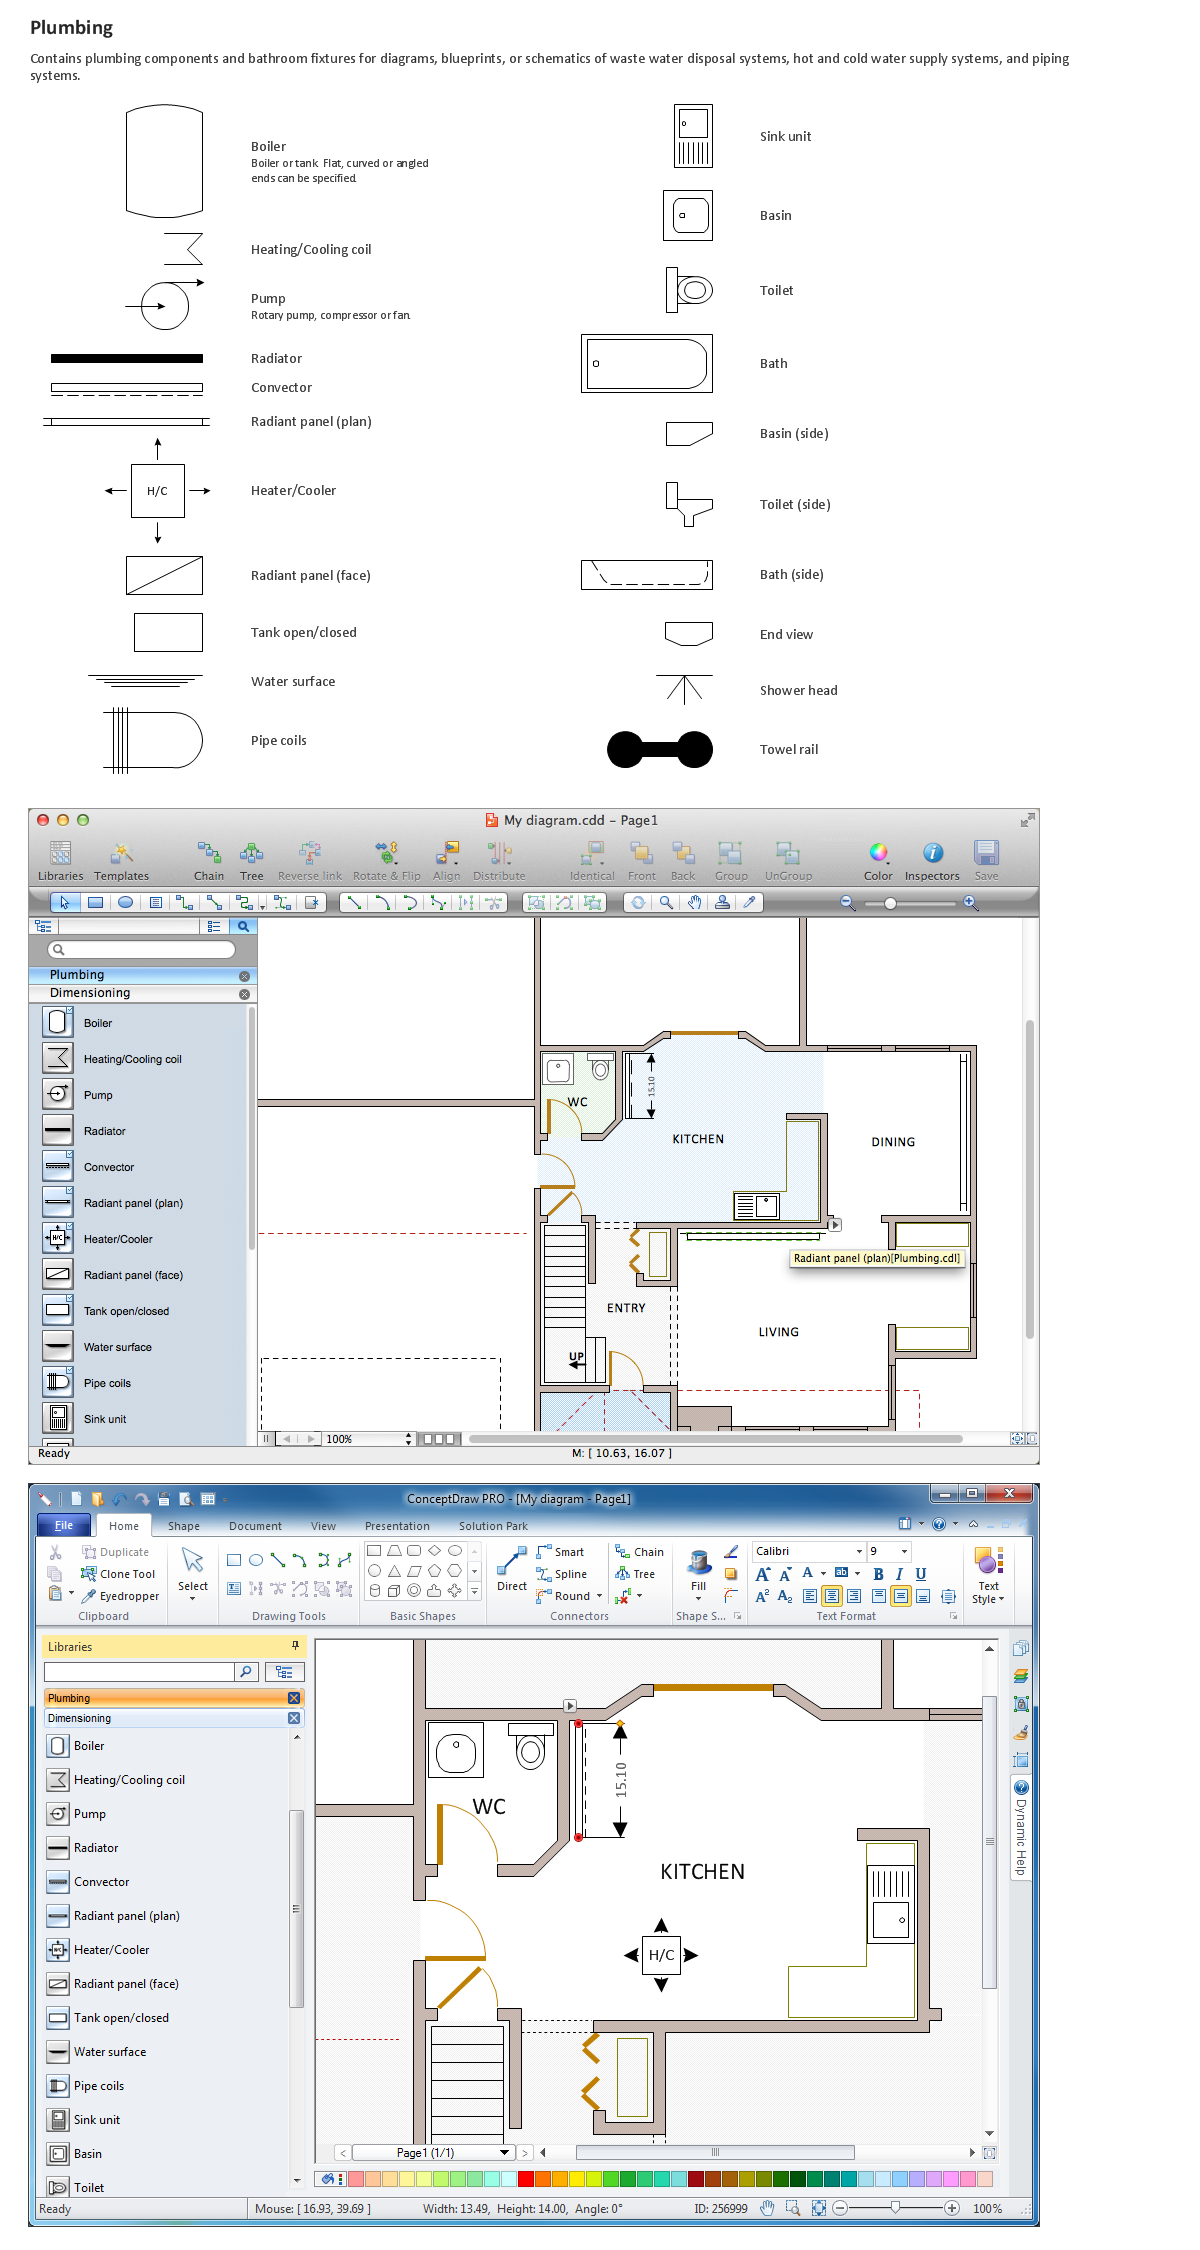 House electrical plan software electrical diagram software building drawing tools design elements plumbing pooptronica